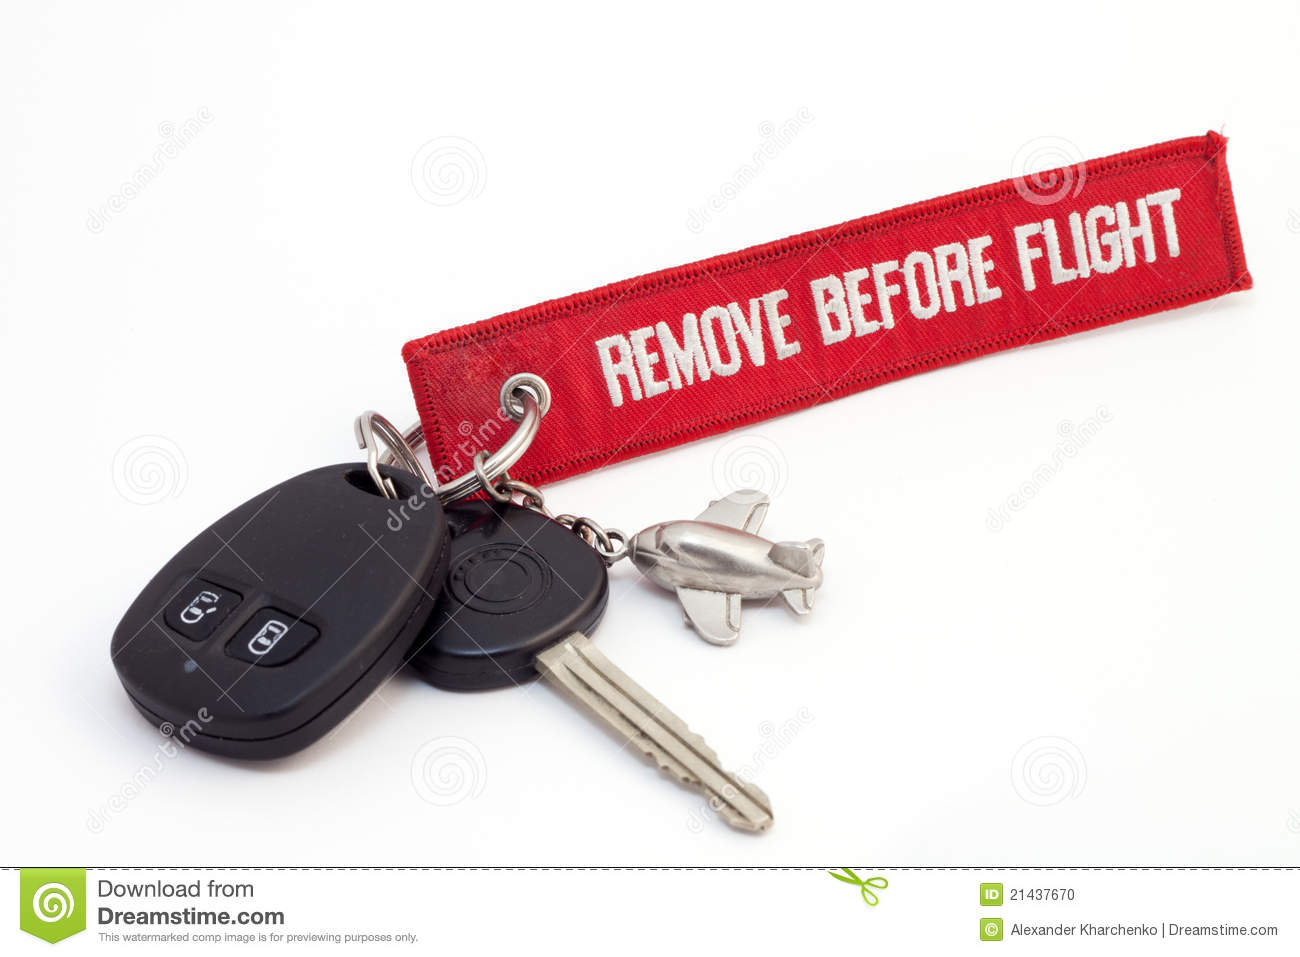 Aircraft key with red tag